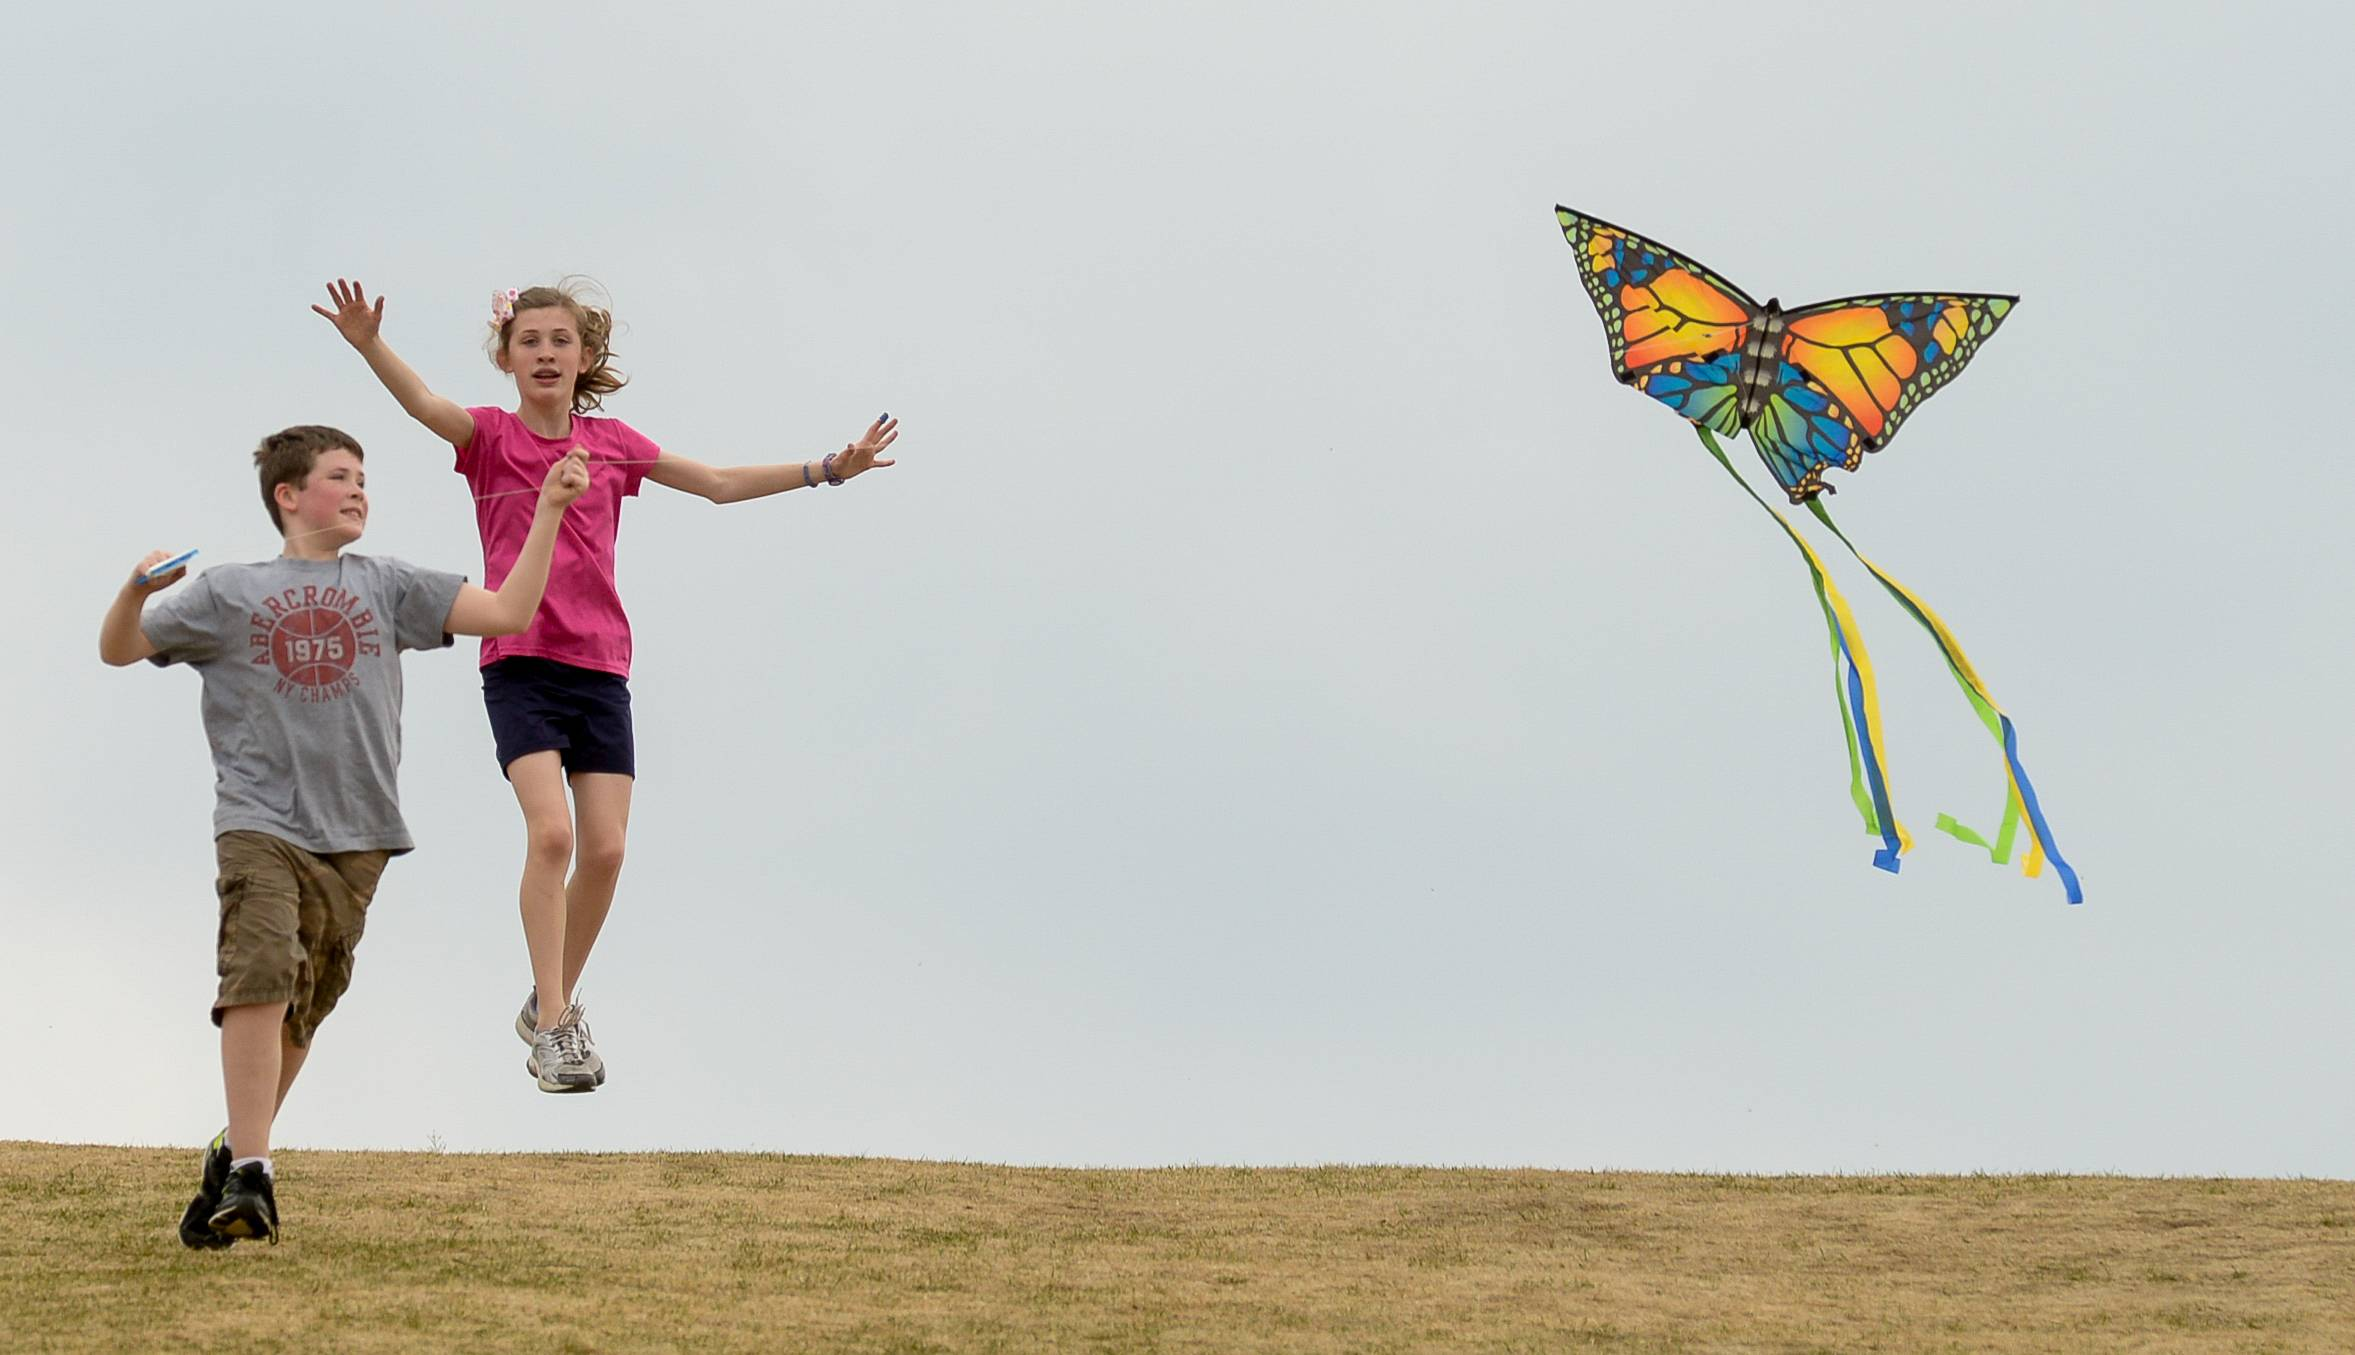 Nathan Achziger and his sister Elise, 12, of Wheaton, launch their butterfly shaped kite while taking advantage of light winds and temperatures in the 70s at Northside Park in Wheaton.